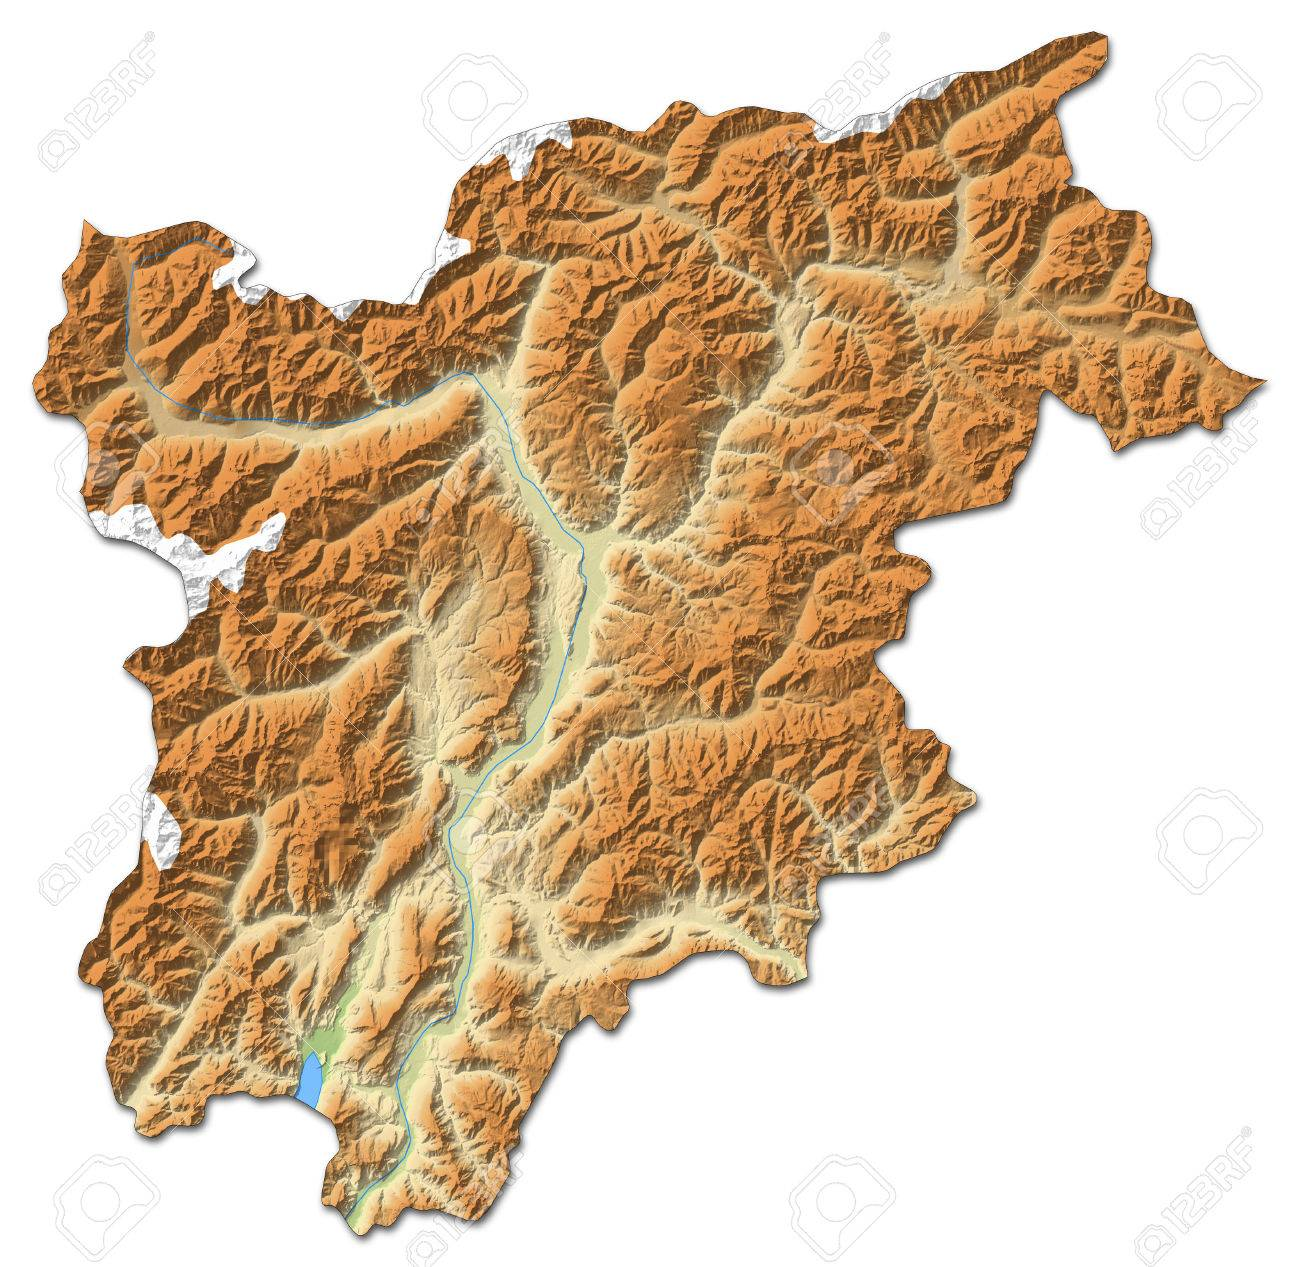 Relief Map Of TrentinoAlto AdigeSdtirol A Province Of Italy